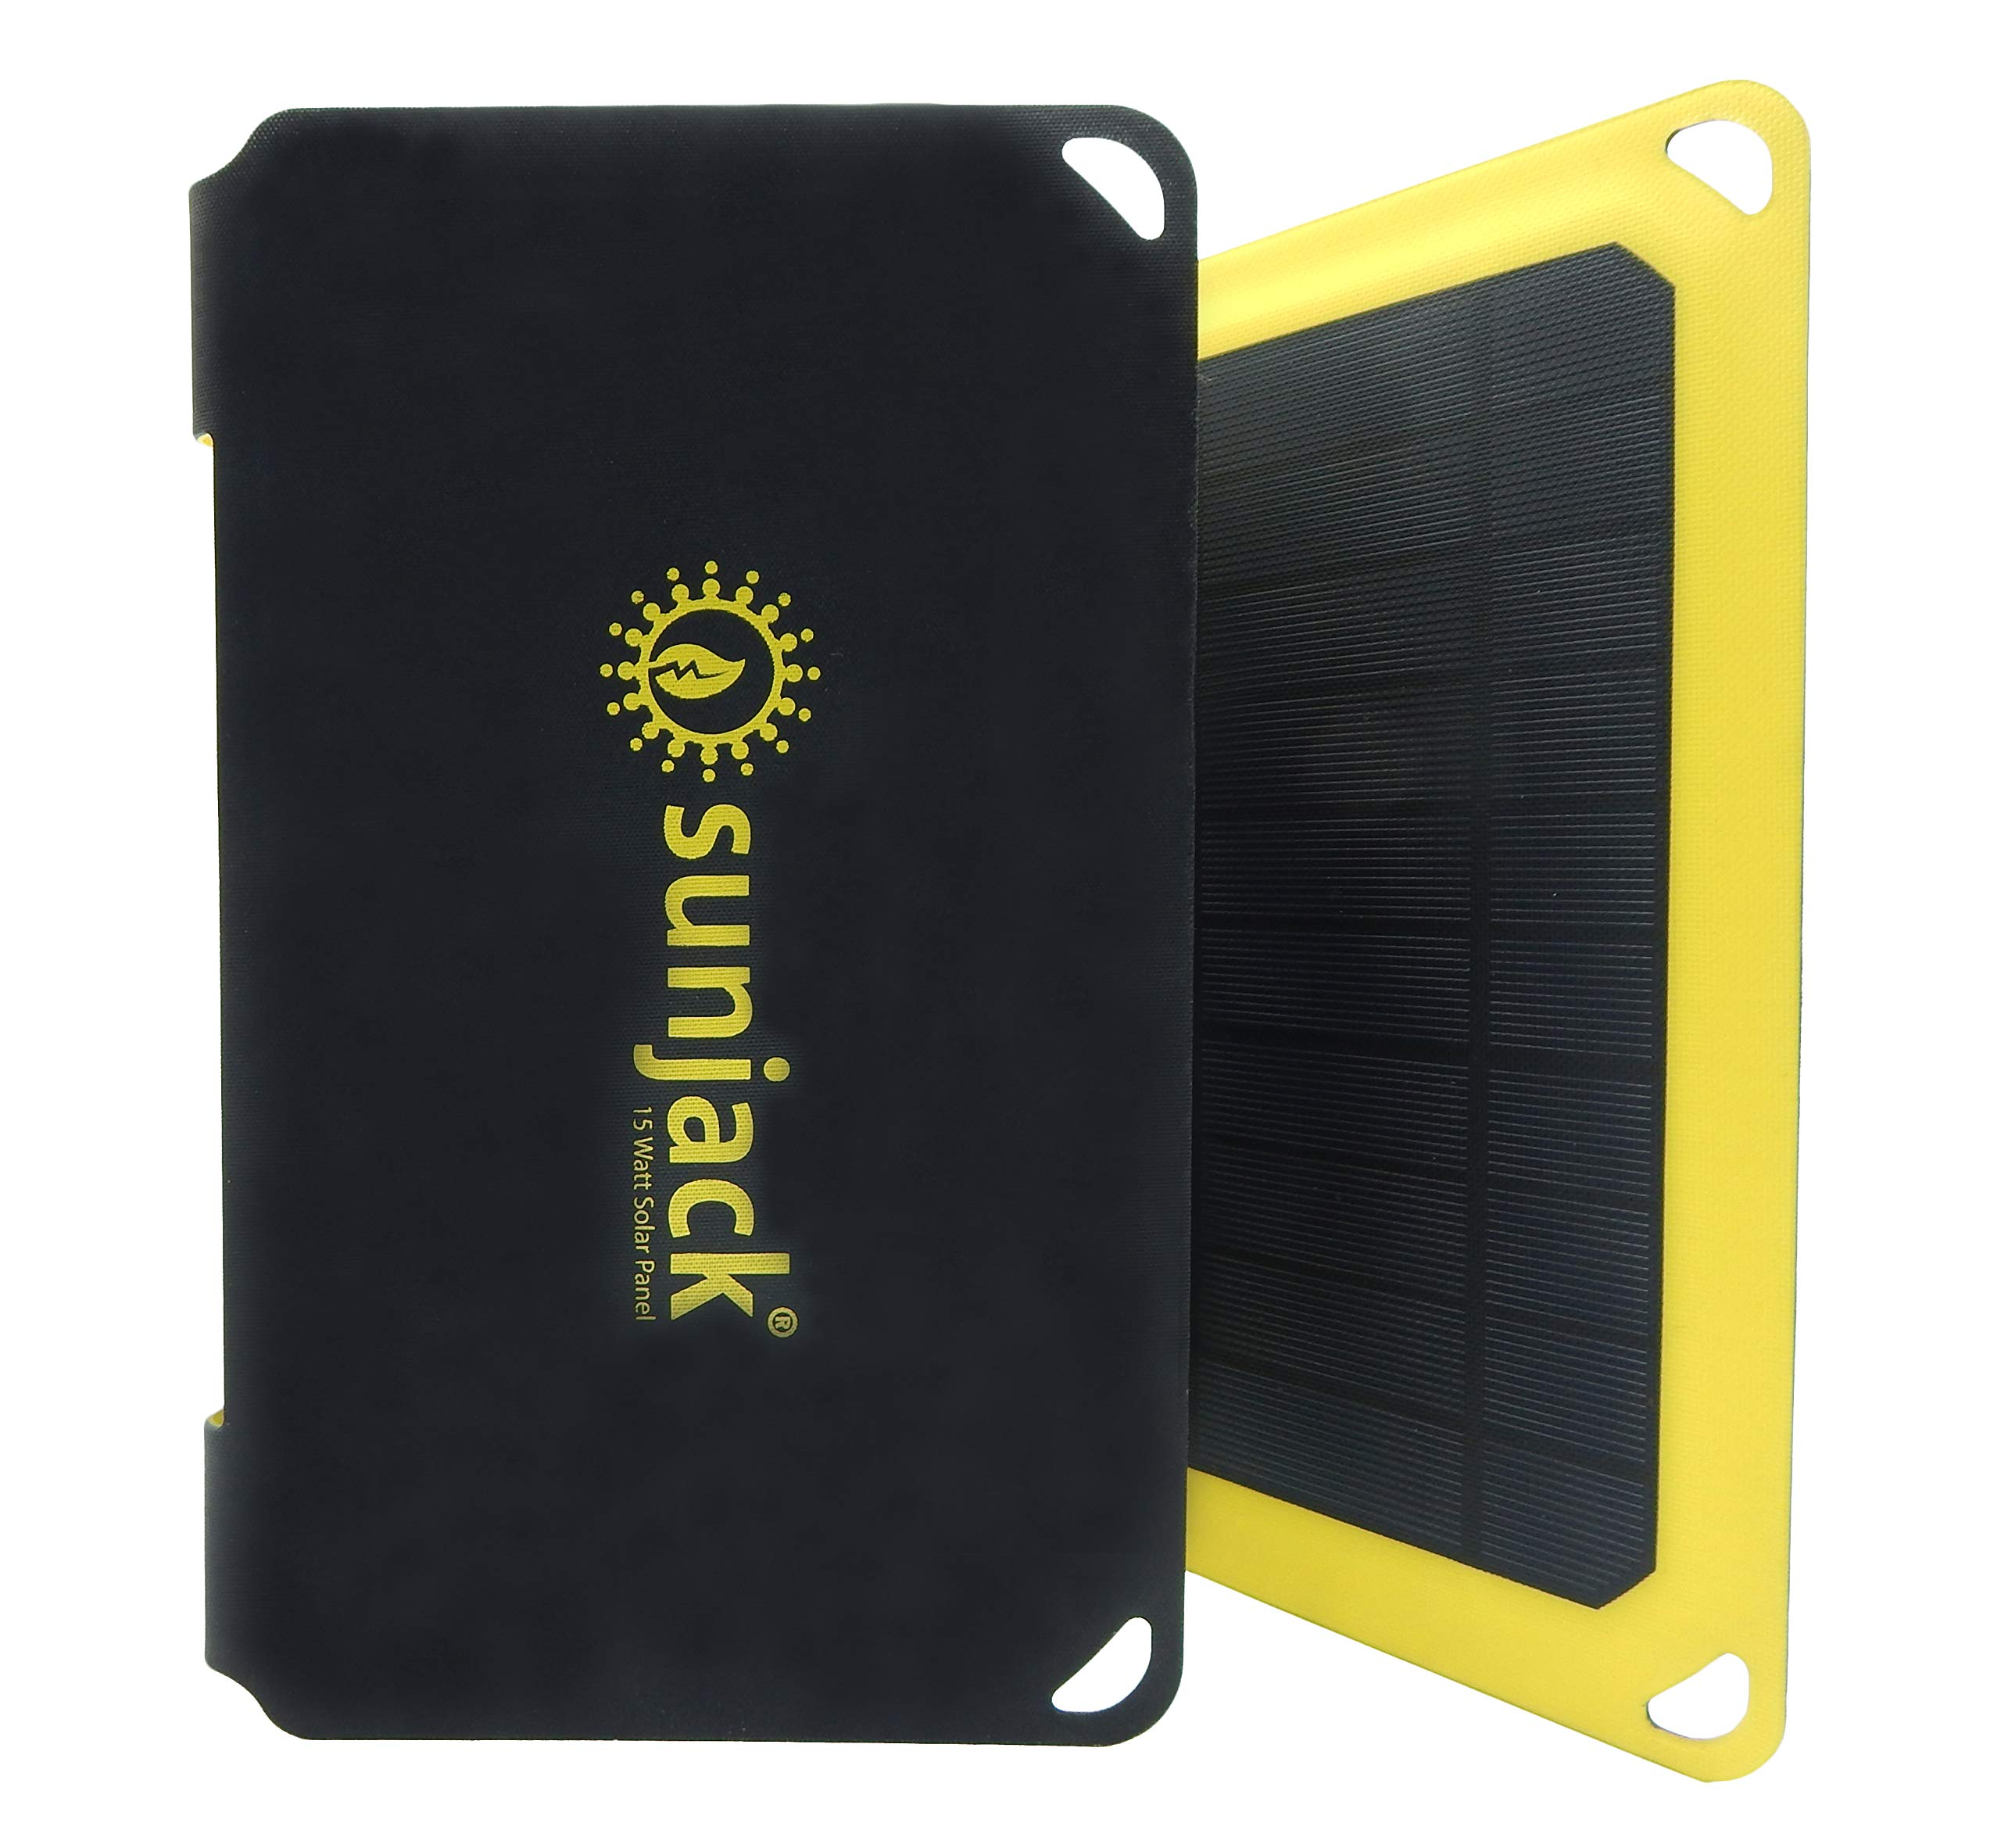 SunJack 15W Solar Charger Portable Solar Panel with USB for Cell Phones, Tablets for Backpacking, Camping, Hiking and More by SunJack